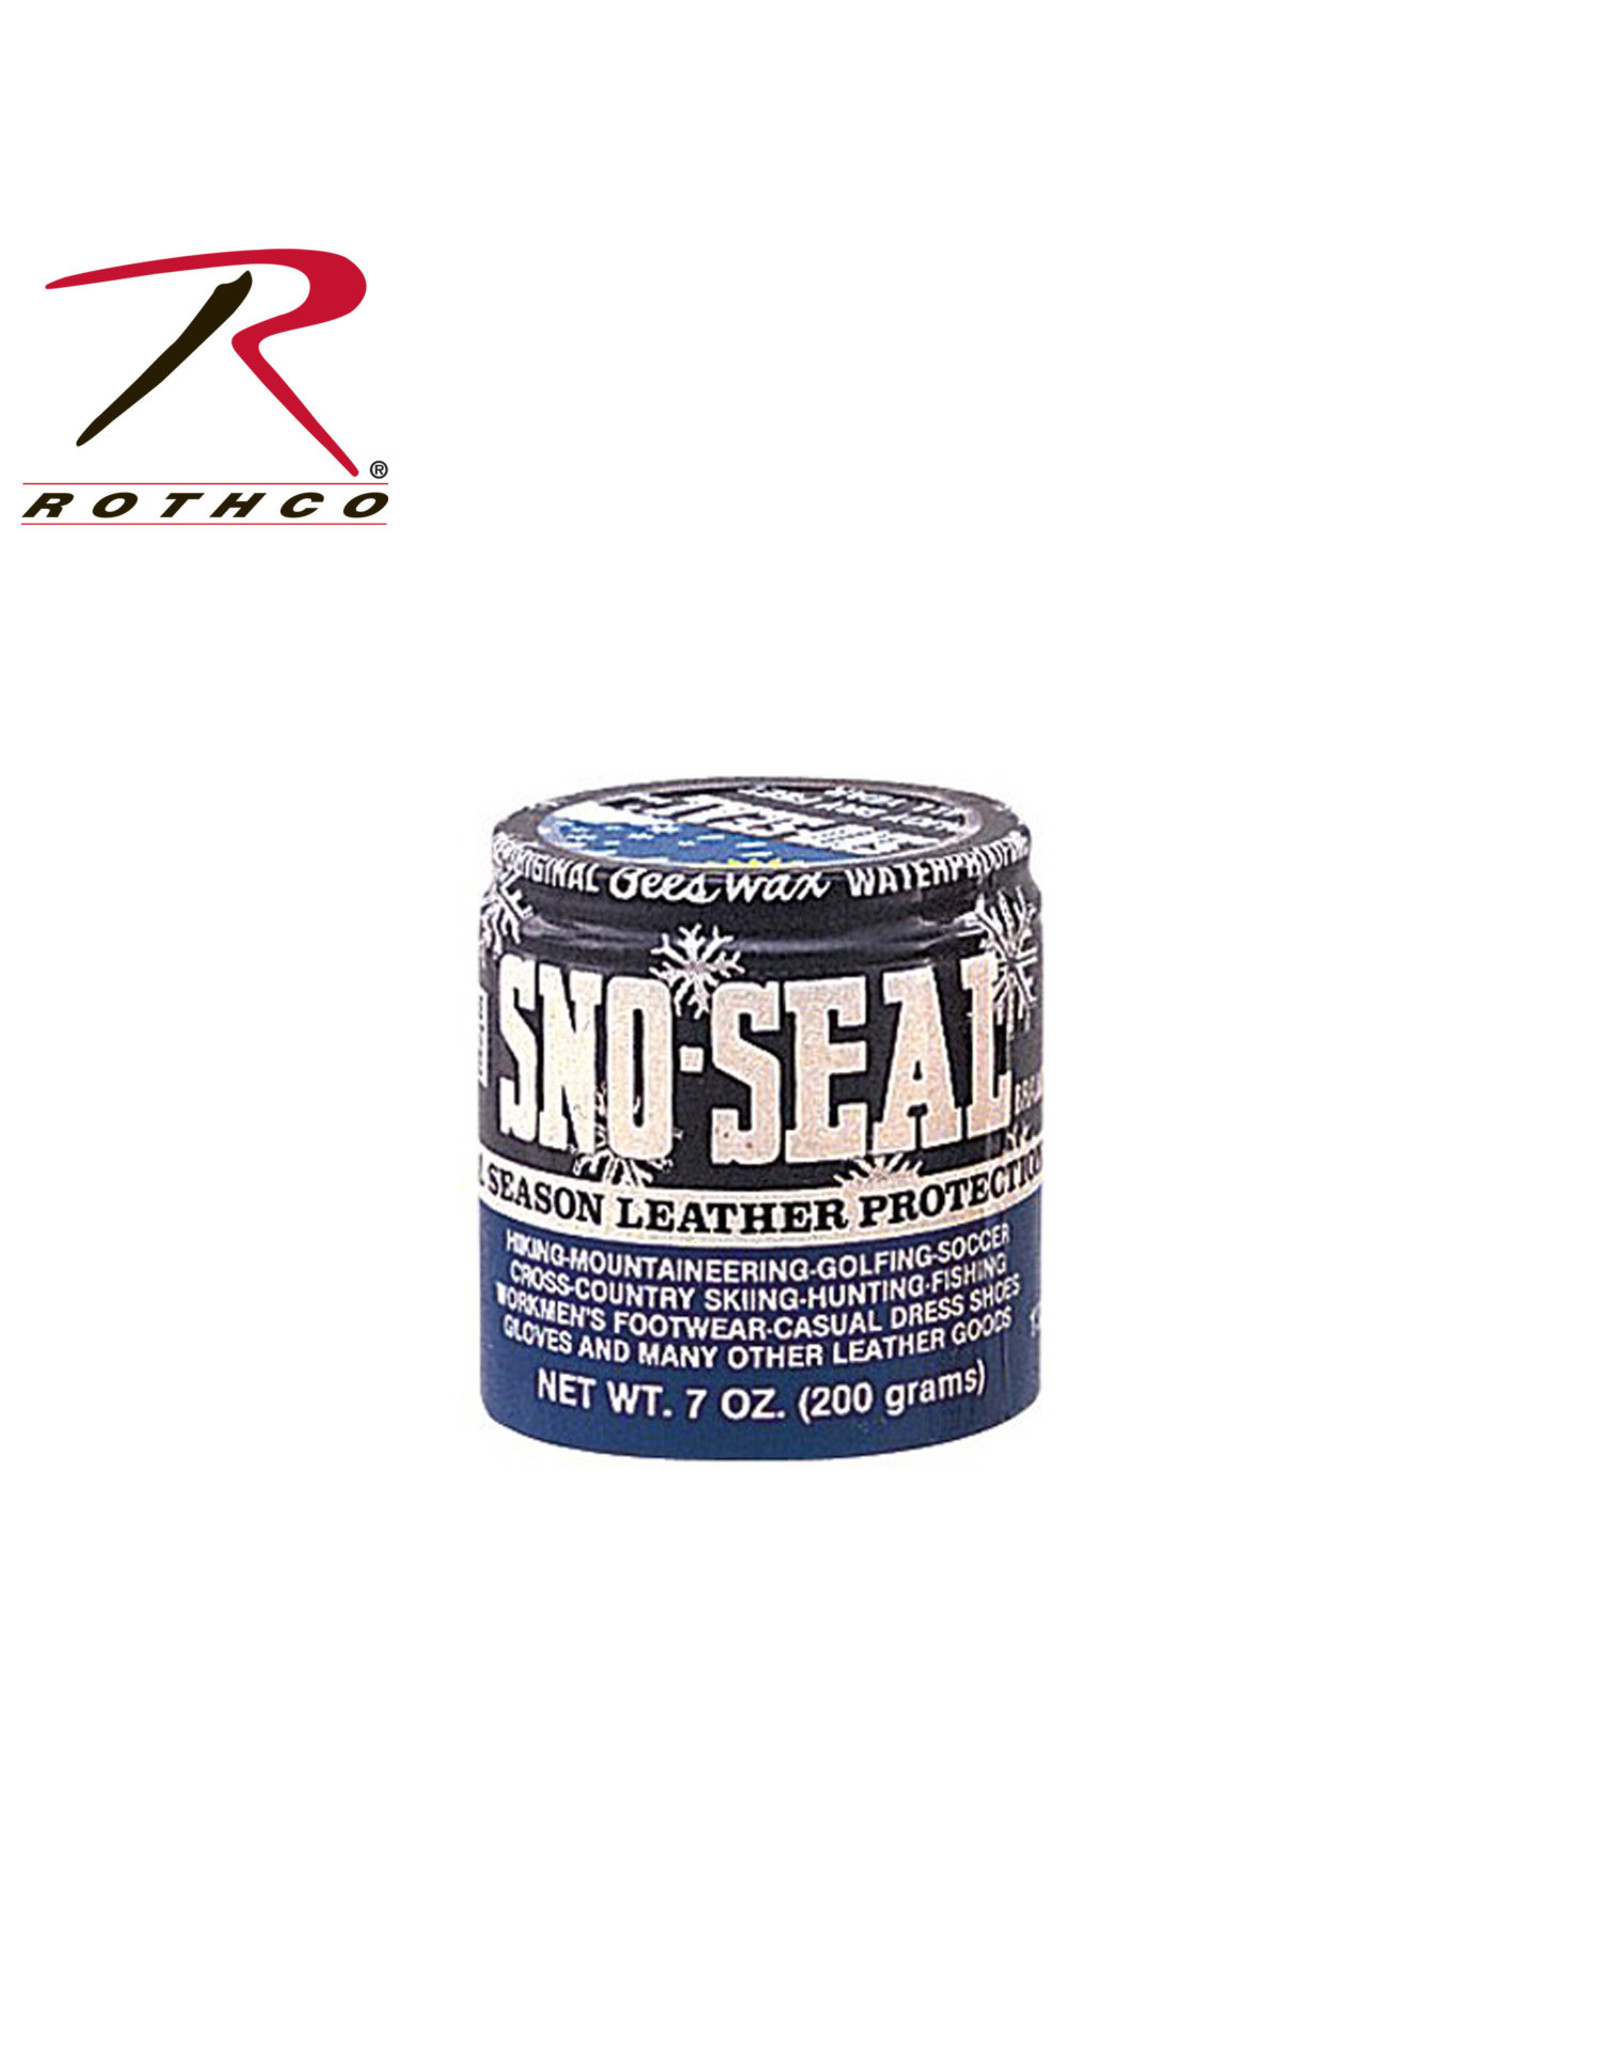 Sno-Seal in a Jar